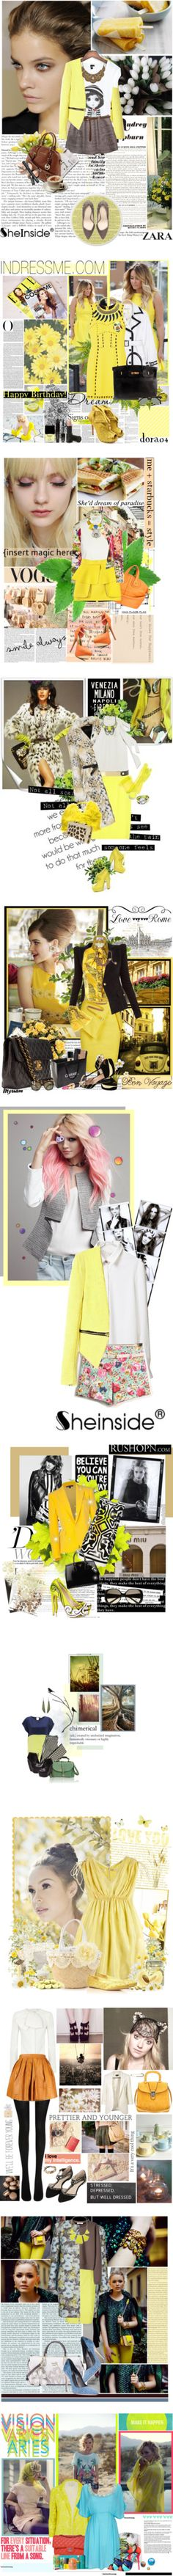 """Something yellow part one"" by shaneeeee ❤ liked on Polyvore"